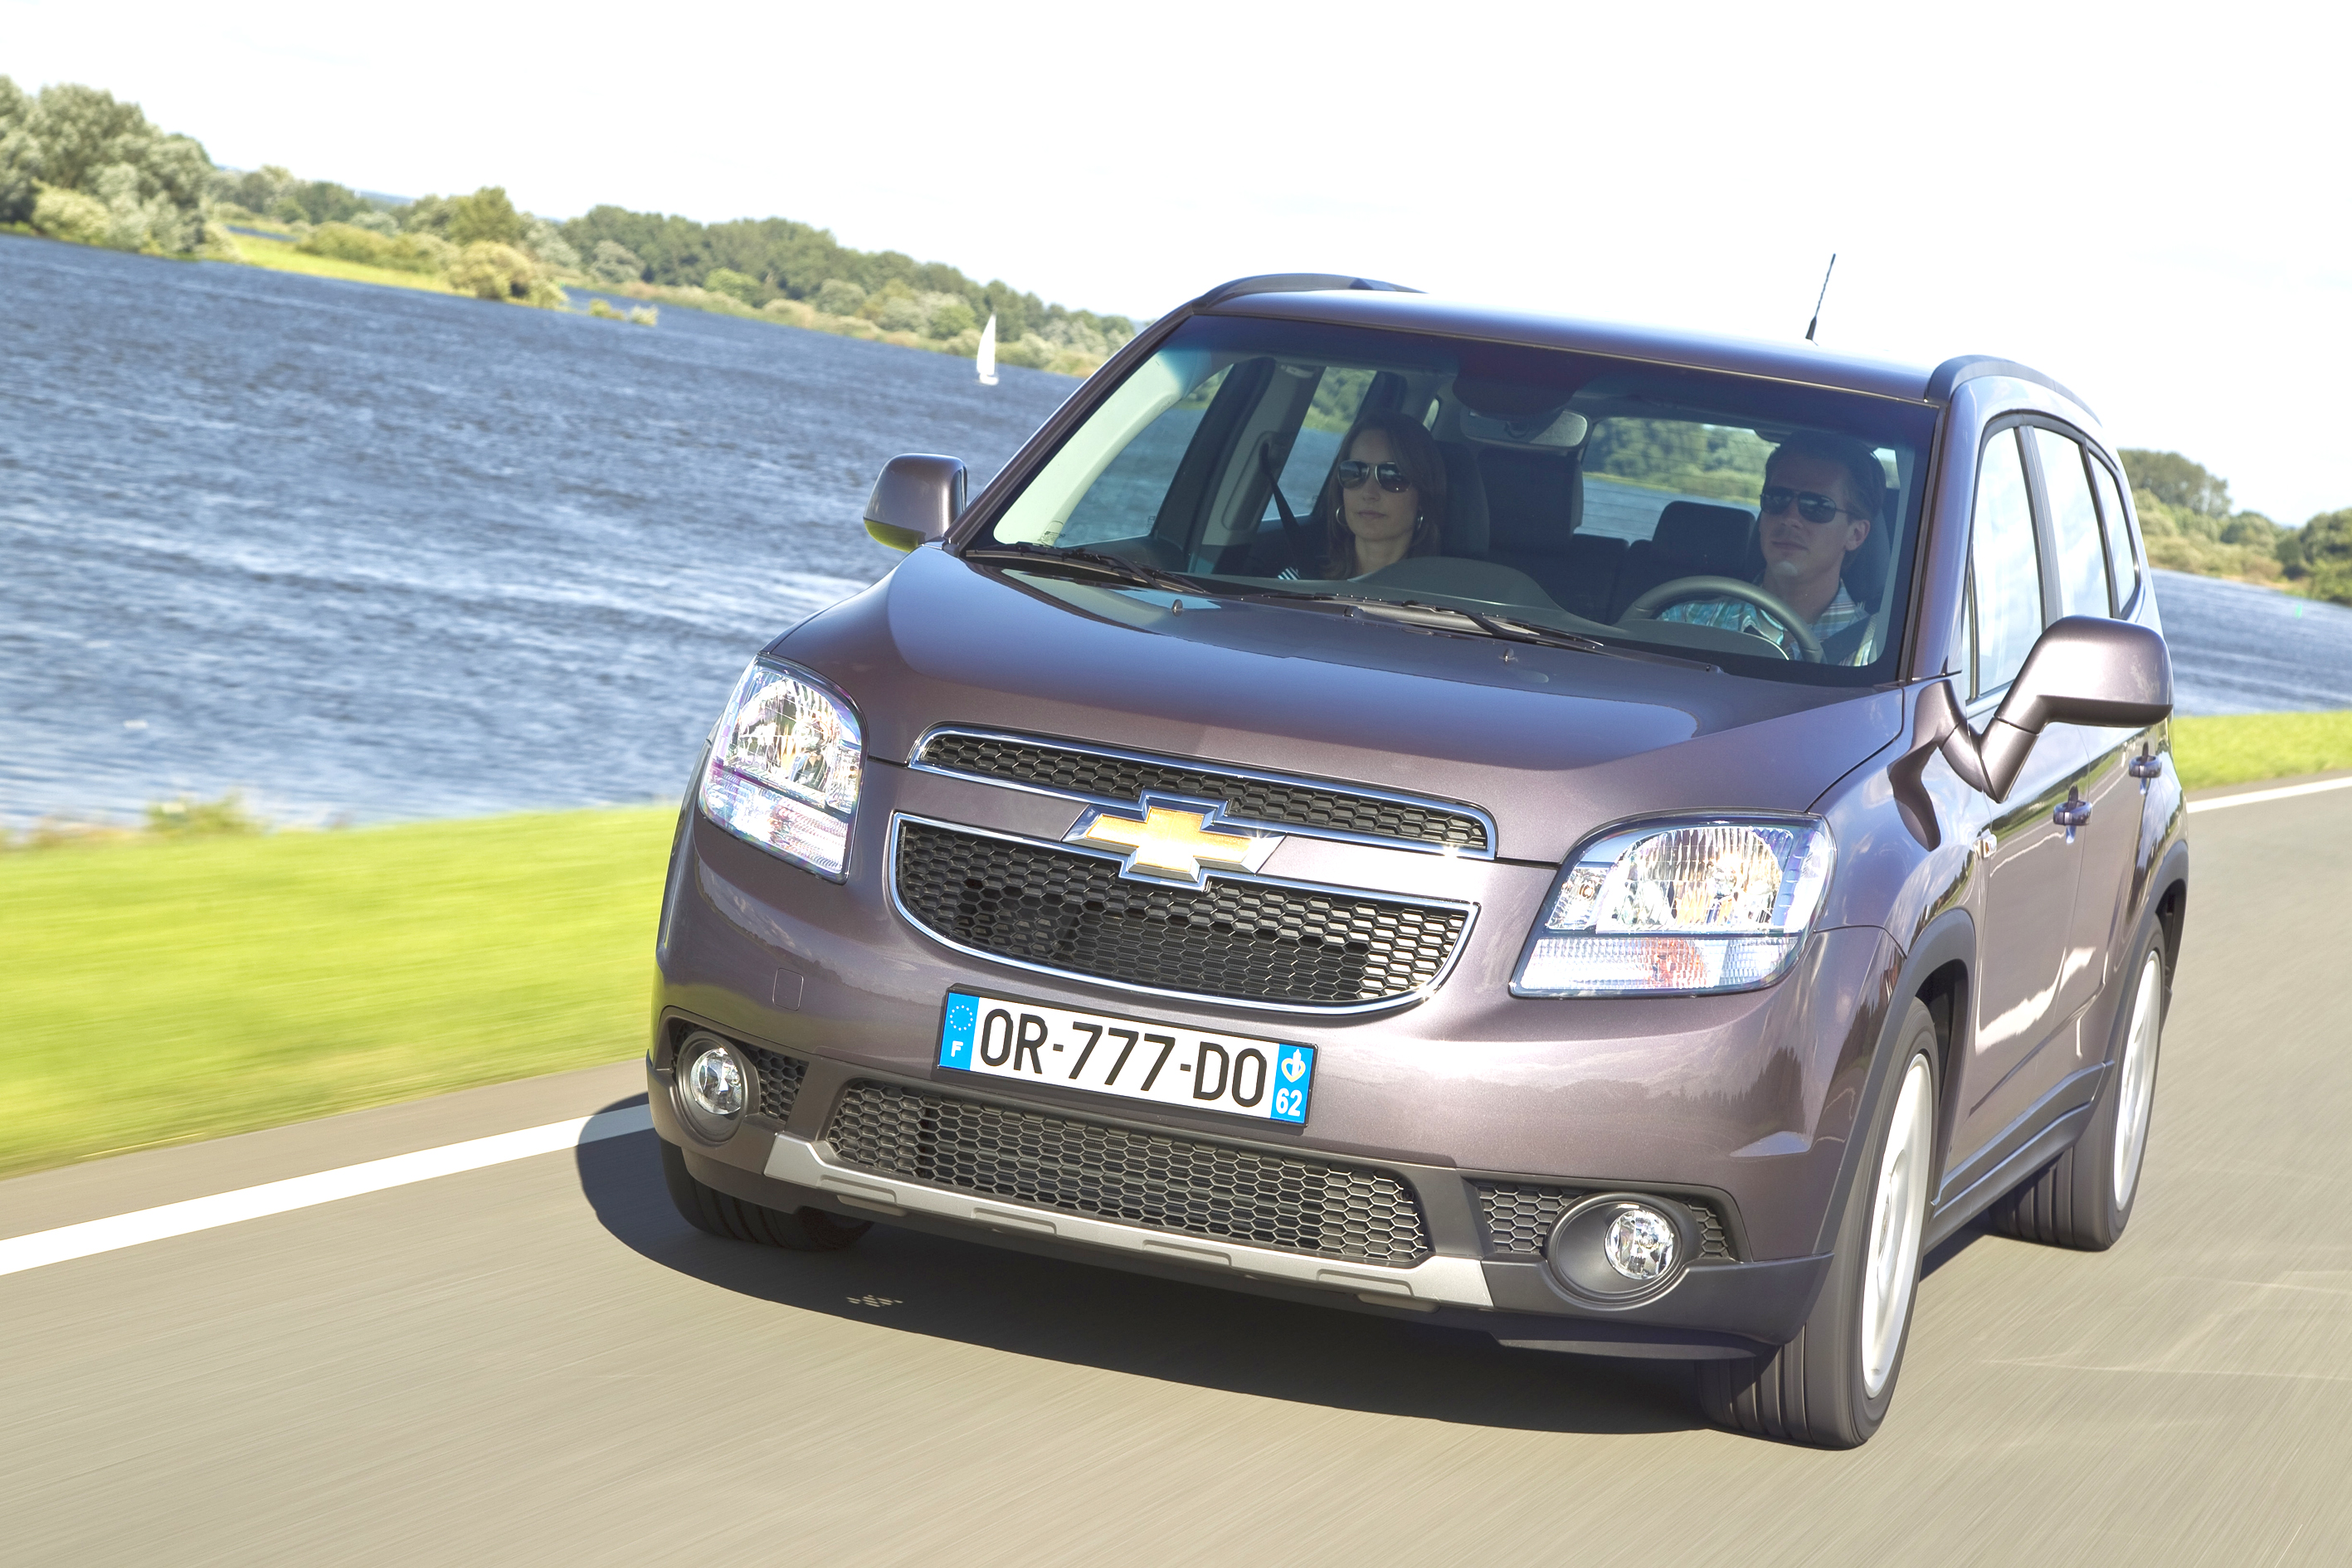 New Chevrolet Orlando family van